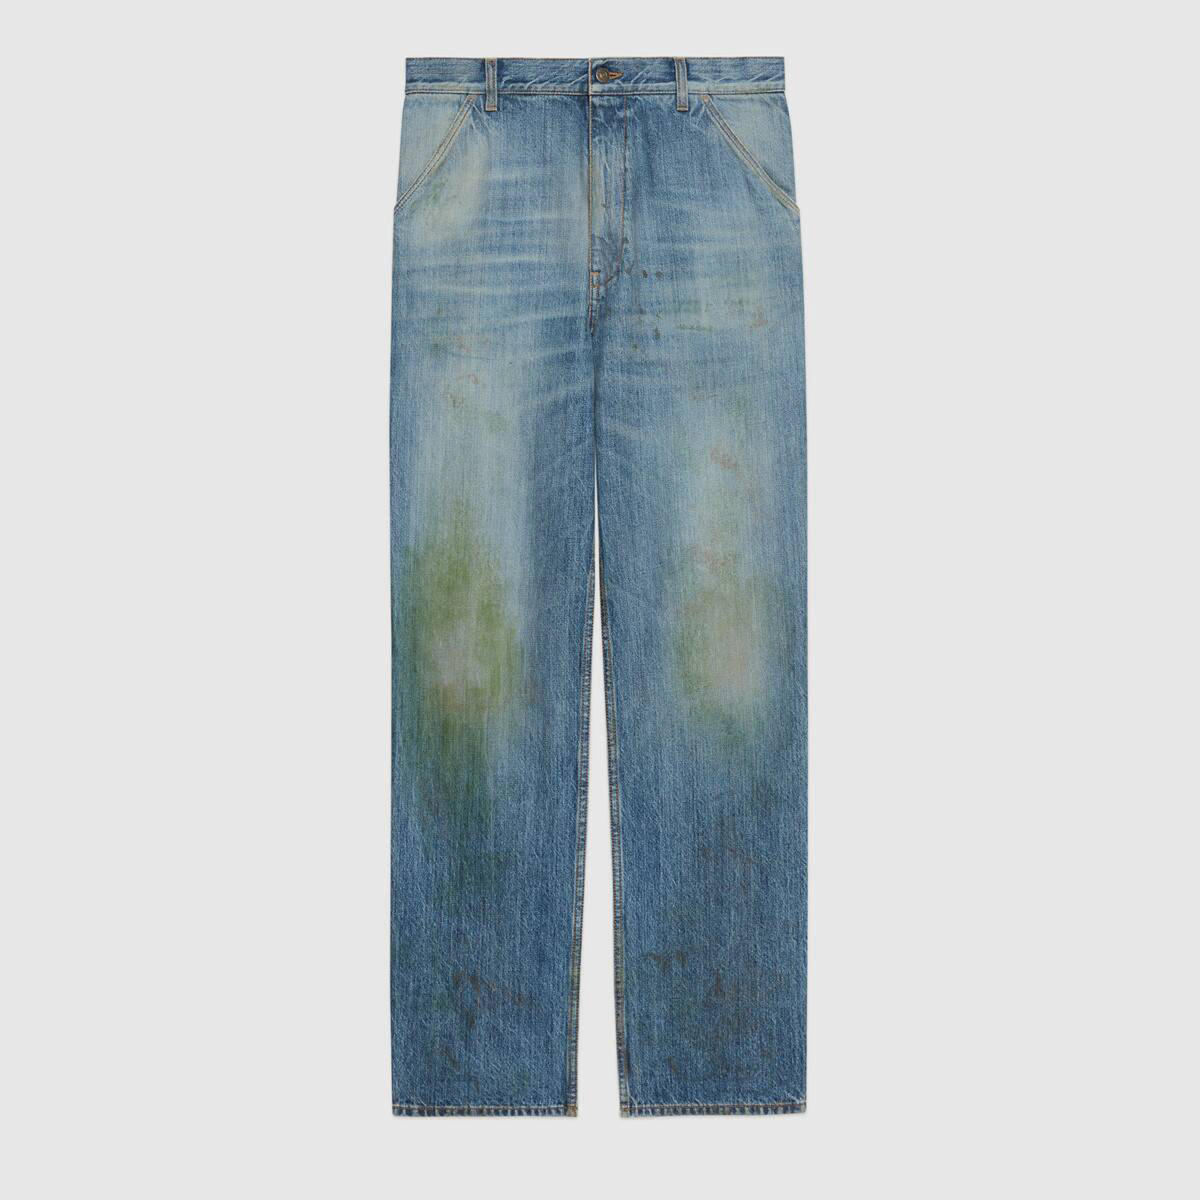 Gucci grass stain jeans  Credit: Gucci